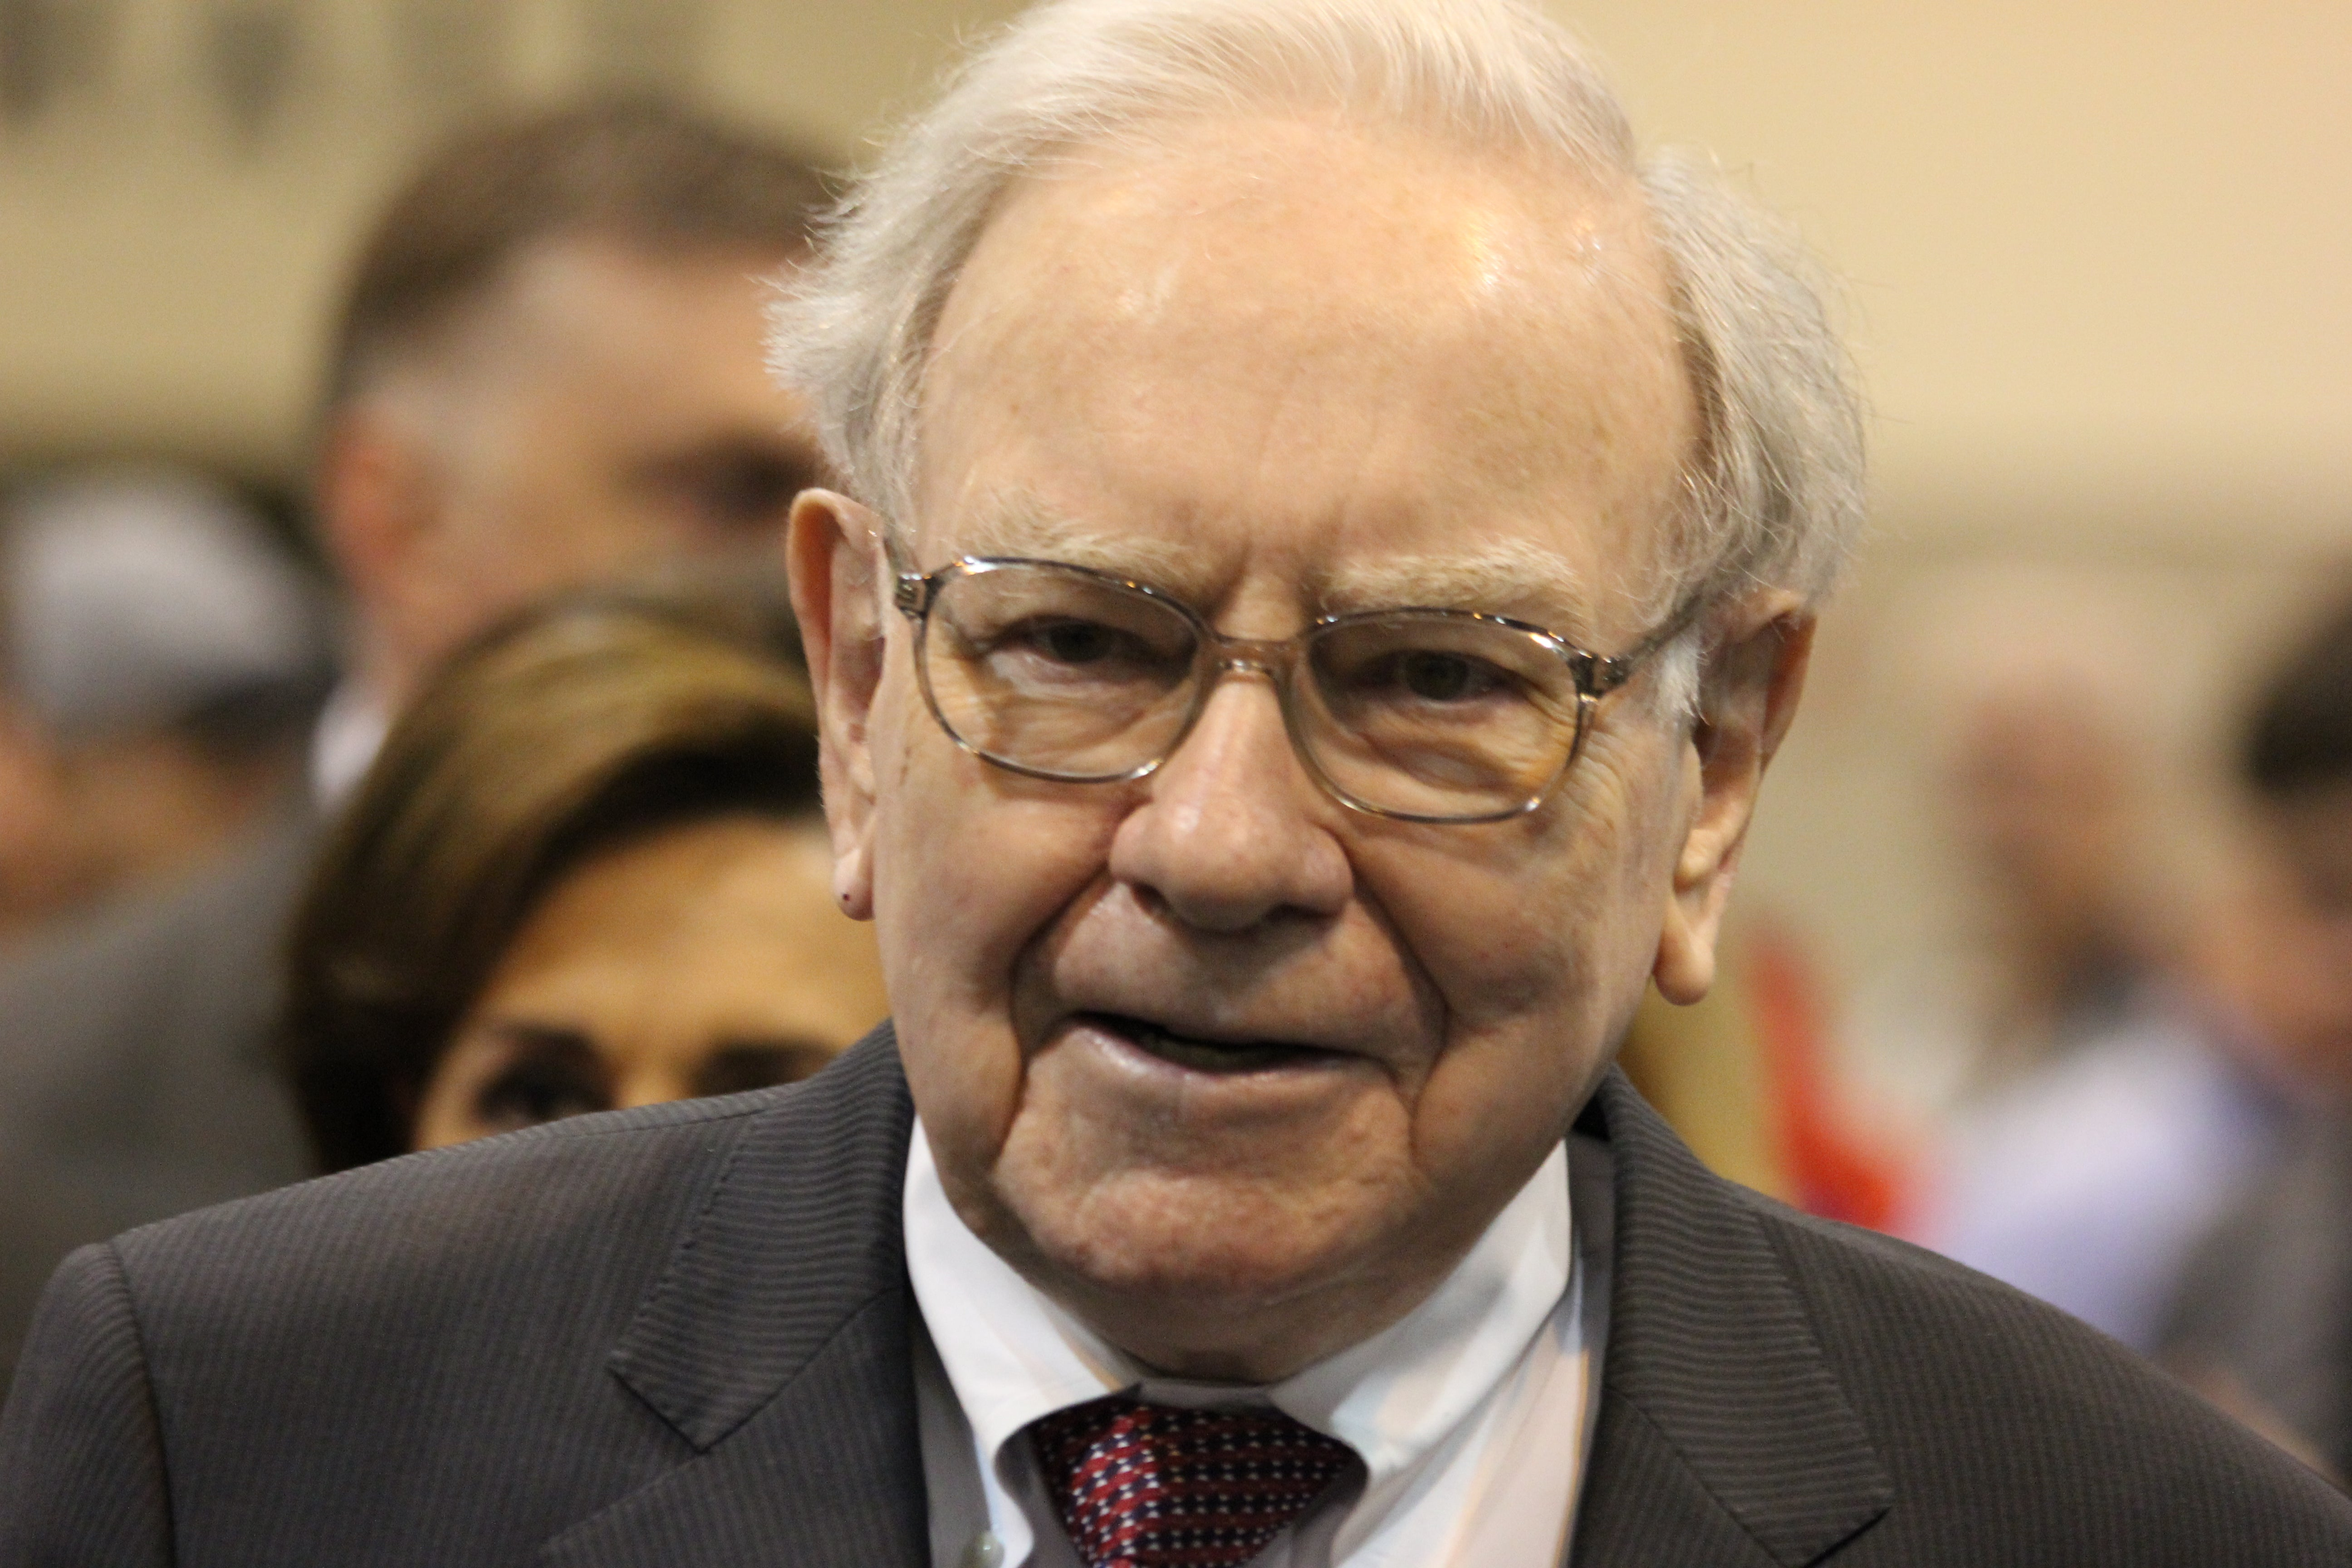 Photo of Warren Buffett Sold All His Airline Stocks: Should You Sell Too? @themotleyfool #stocks $BRK.A $BRK.B $LUV $DAL $UAL $AAL | Lou Whiteman